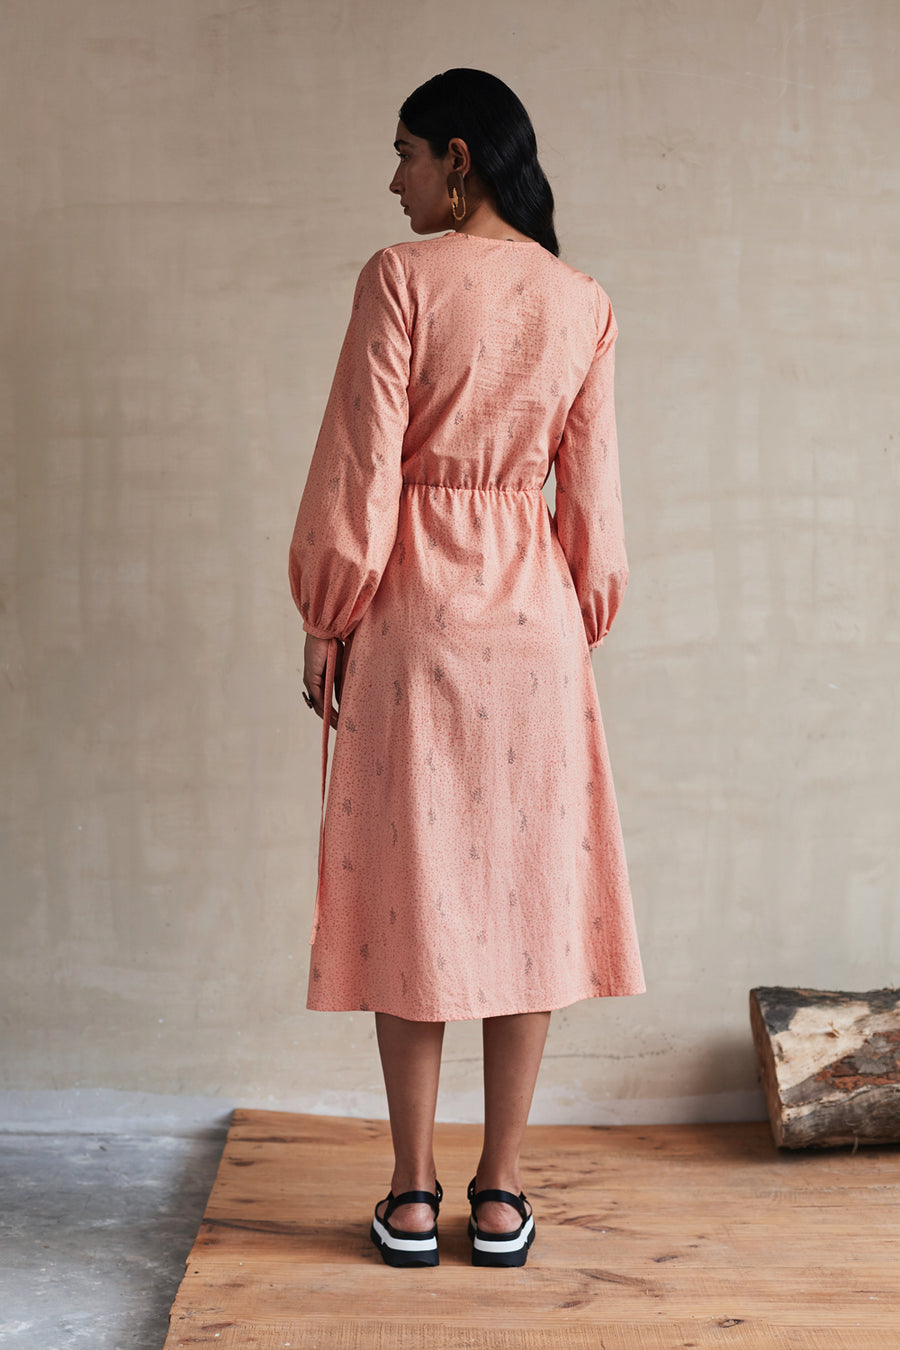 Peach-Sorbet Twist Dress - Ethical made fashion - onlyethikal